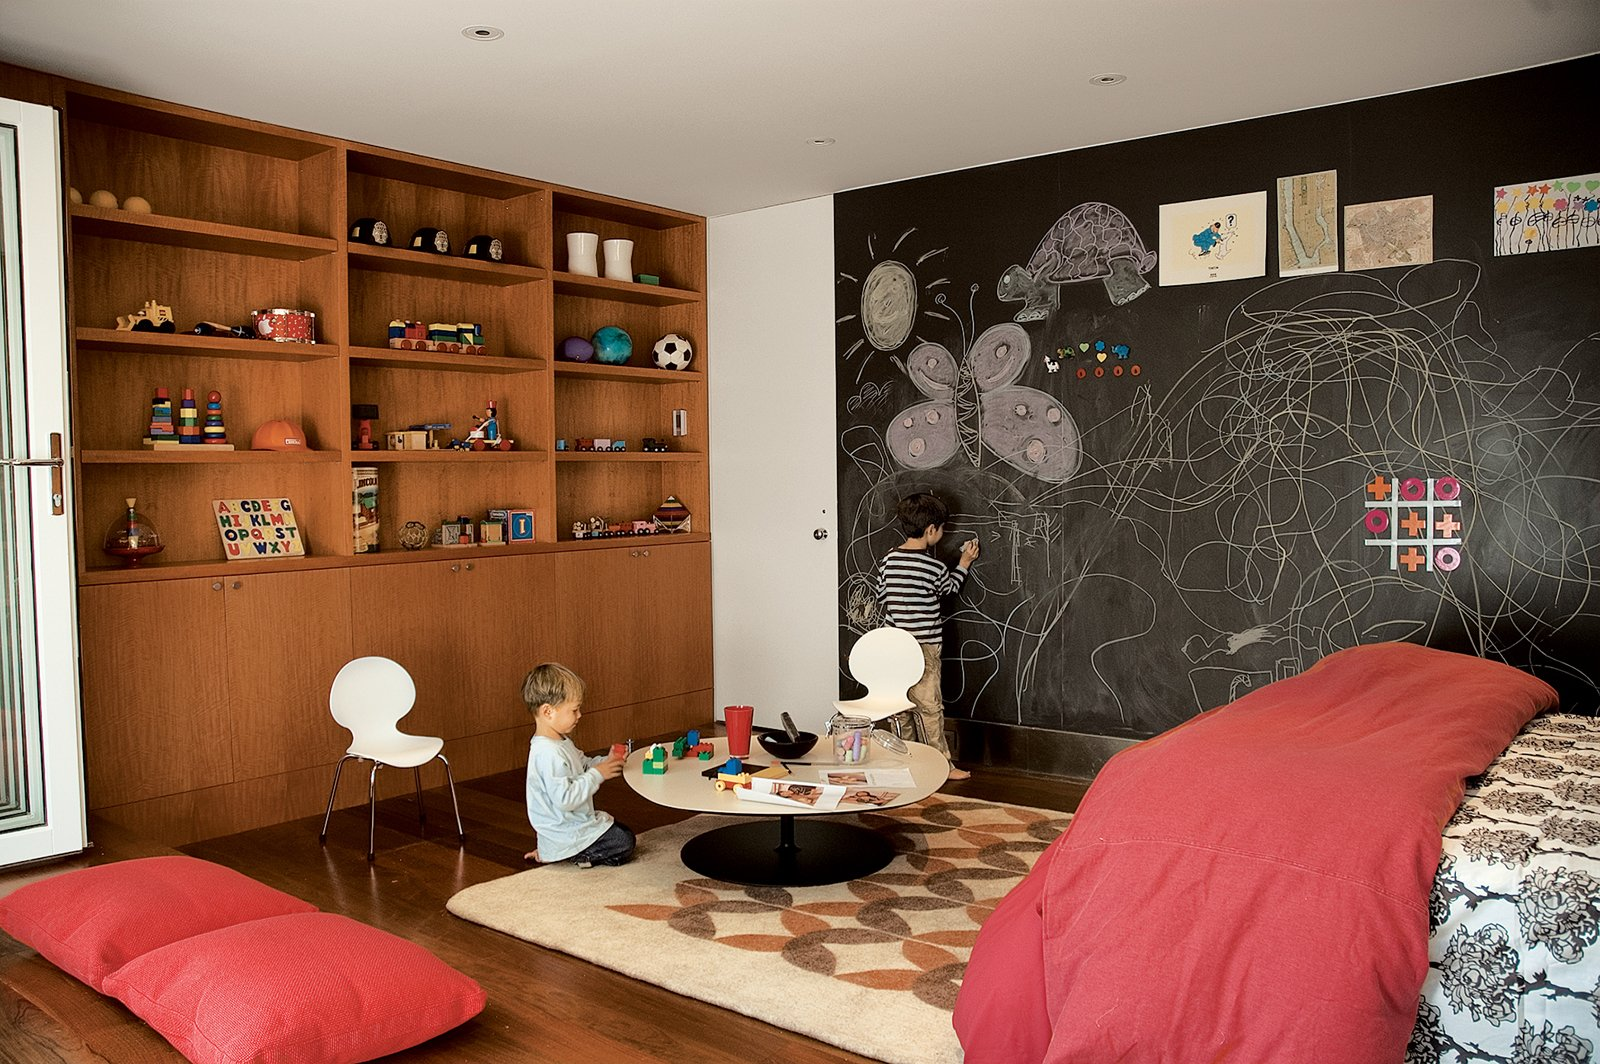 Garage, Garage Conversion Room Type, Living Room Room Type, and Attached Garage Room Type Writing on the walls is encouraged by the magnetic slate chalkboard from Claridge Products. The Phoenix table by Patricia Urquiola for Moroso does double duty as a play table or a coffee table, depending upon who's in residence. The Tulips felt rug is from Peace Industry, and was made in a fair-trade workshop in Iran. The casework is constructed of anigre wood.  Photo 4 of 4 in A Garage Converted Modern Playroom